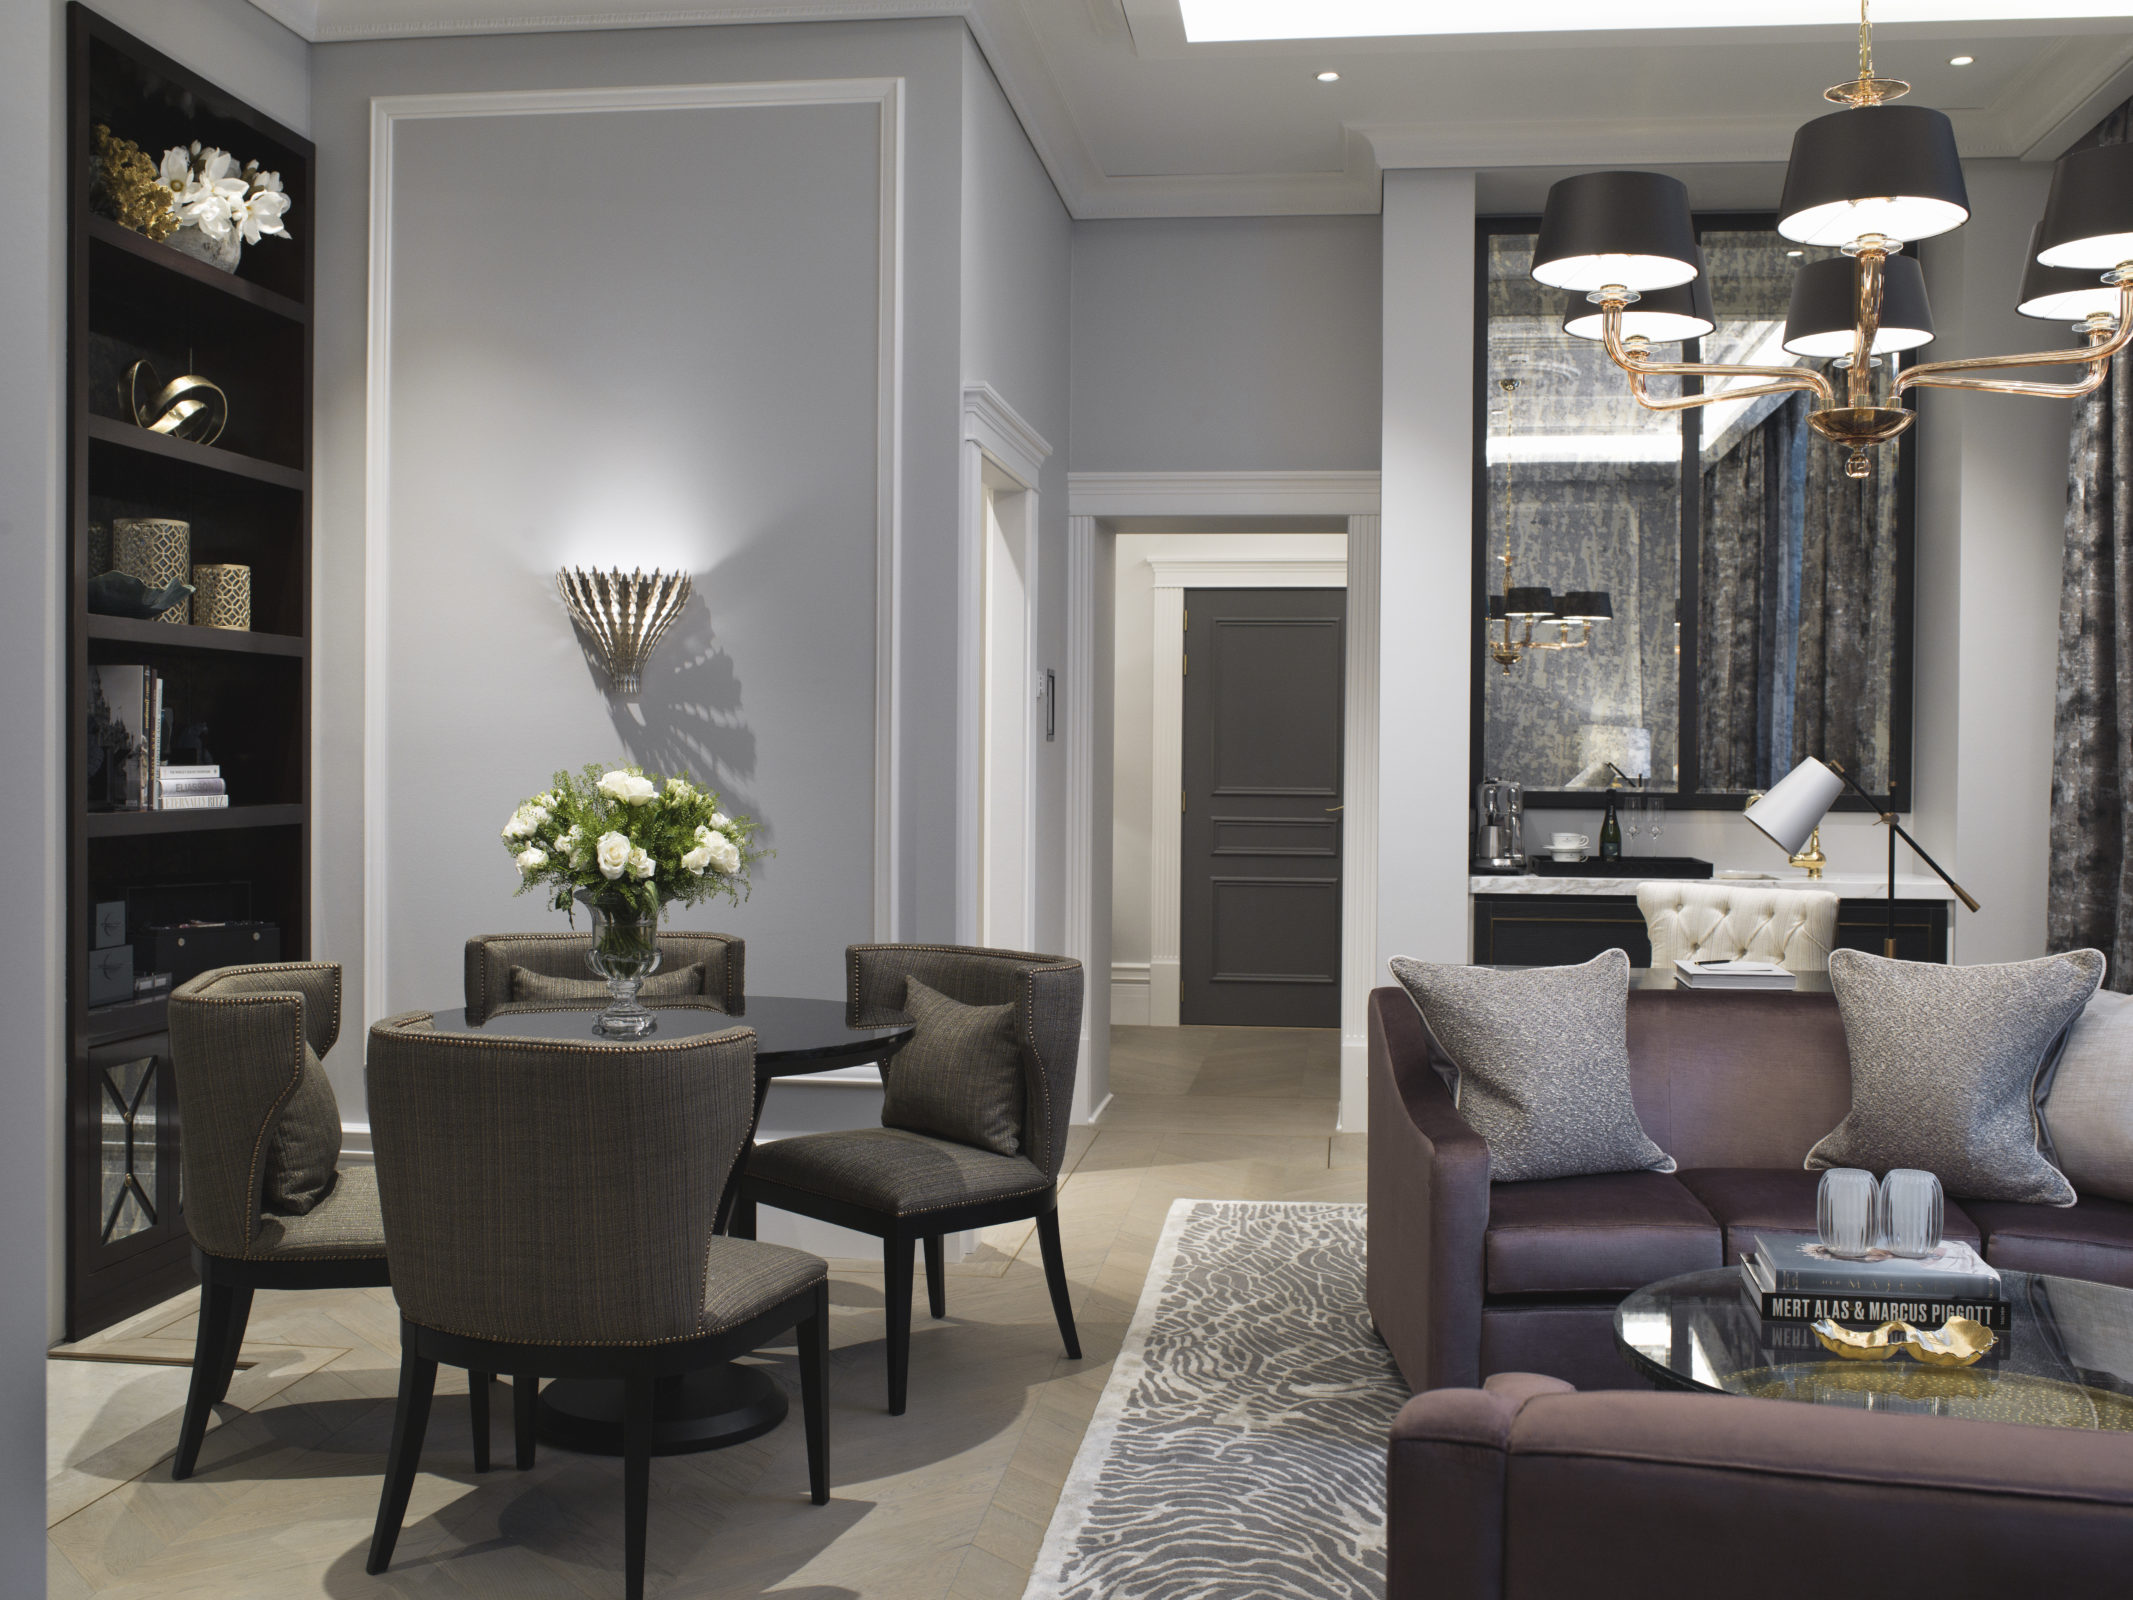 Britannia Hotel in Trondheim's Signature Suite styled by Metropolis Interior Architects. Living room and entertainment area, with entrance hallway and adjoining suite in the background.